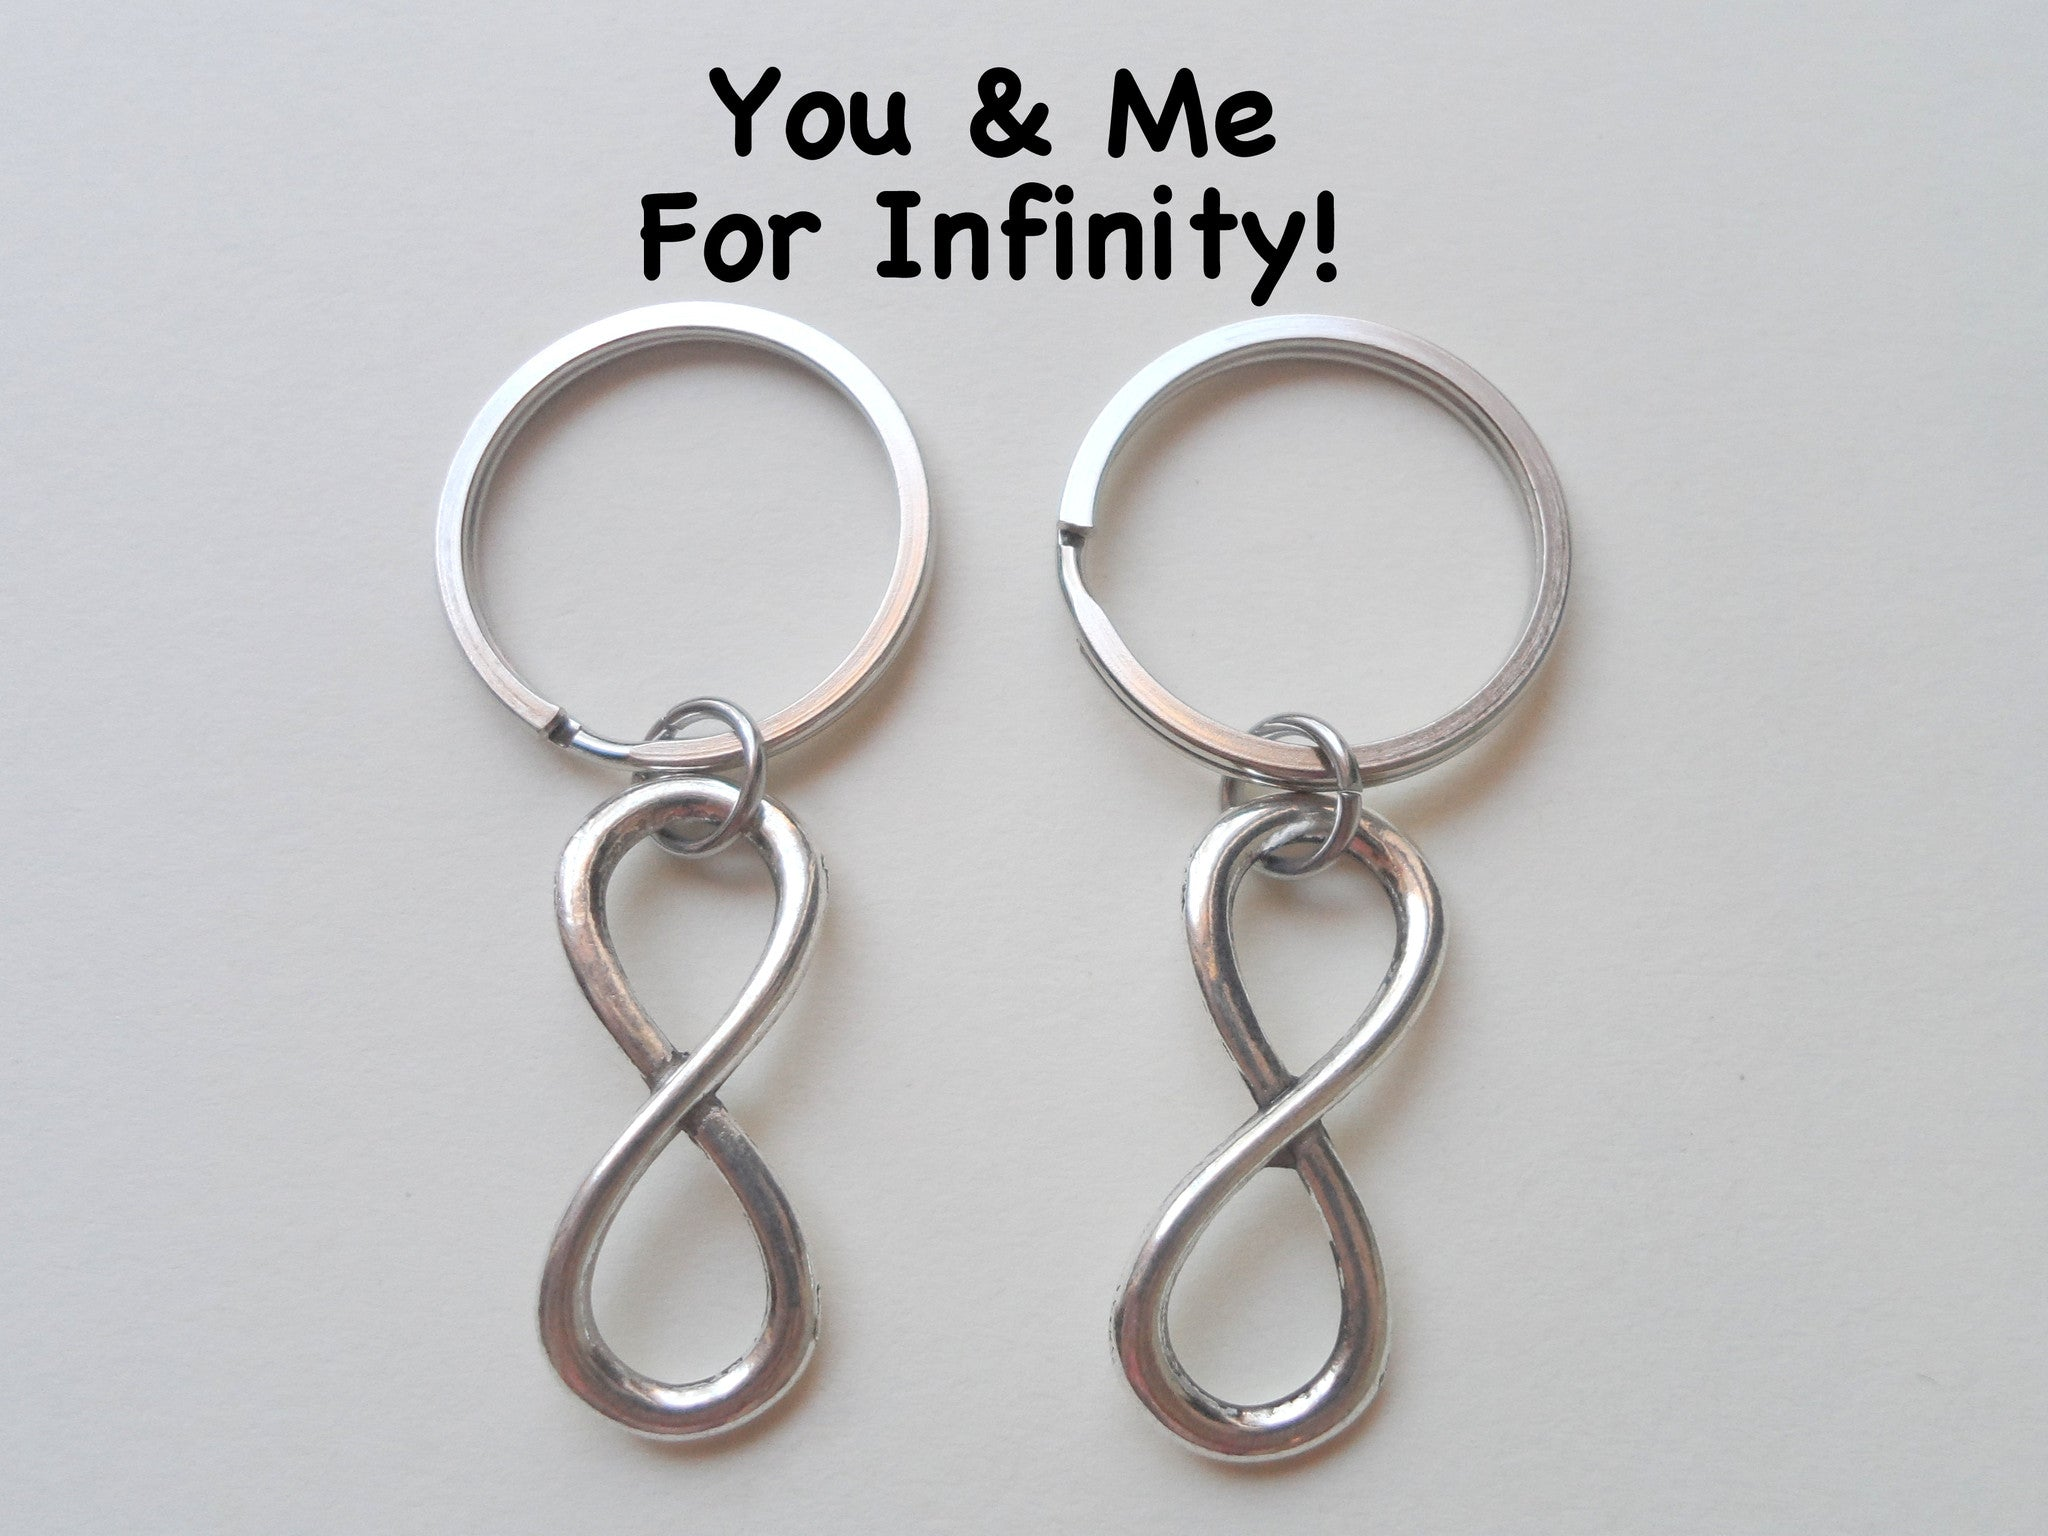 Double keychain set infinity symbol keychain you me for infinity double keychain set infinity symbol keychain you and me for infinity couples keychain set biocorpaavc Image collections